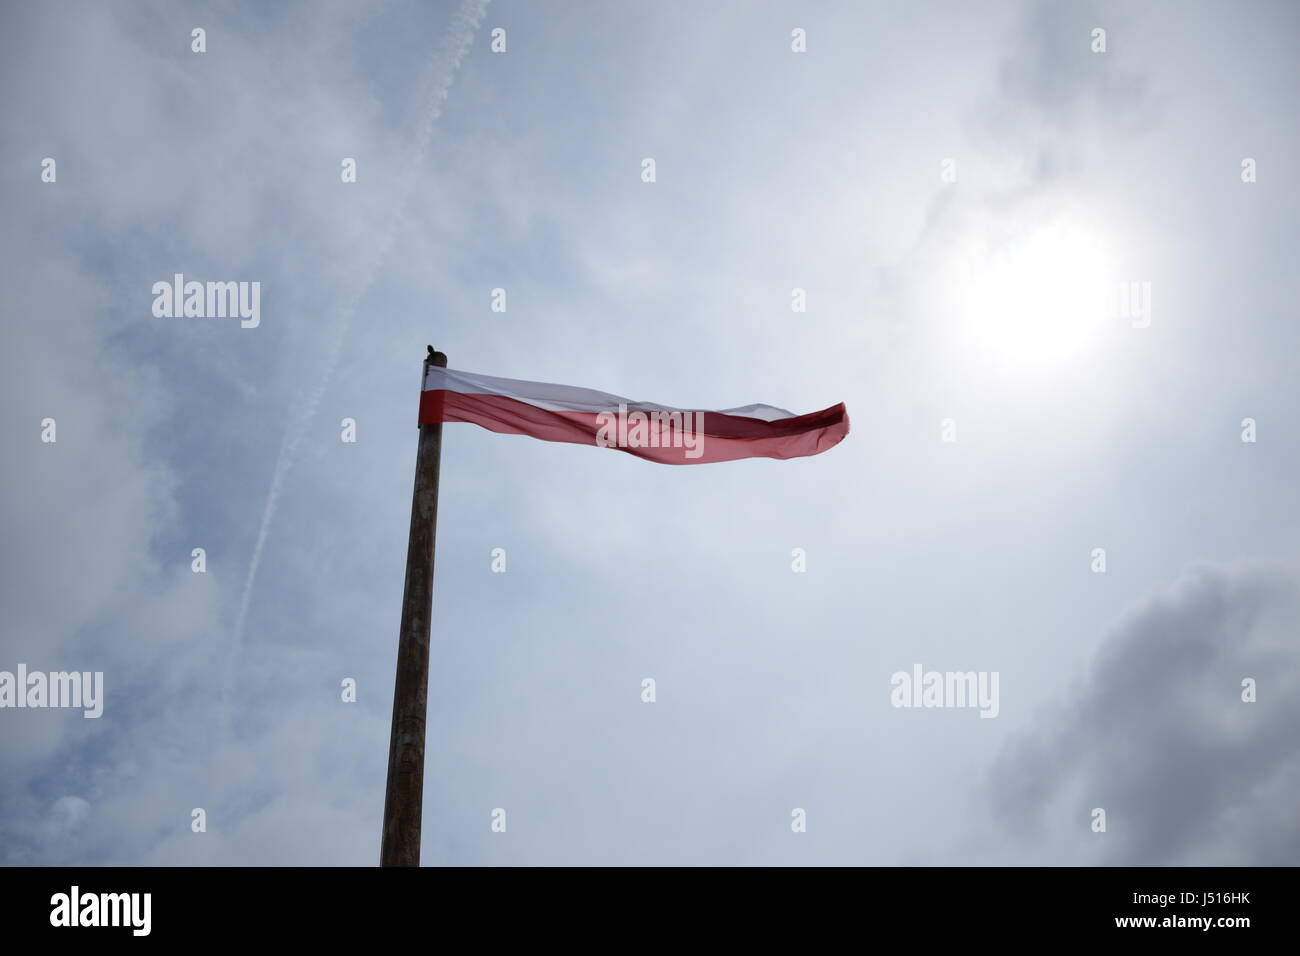 Polish flag flying on flagpole in the cloudy sky - Stock Image